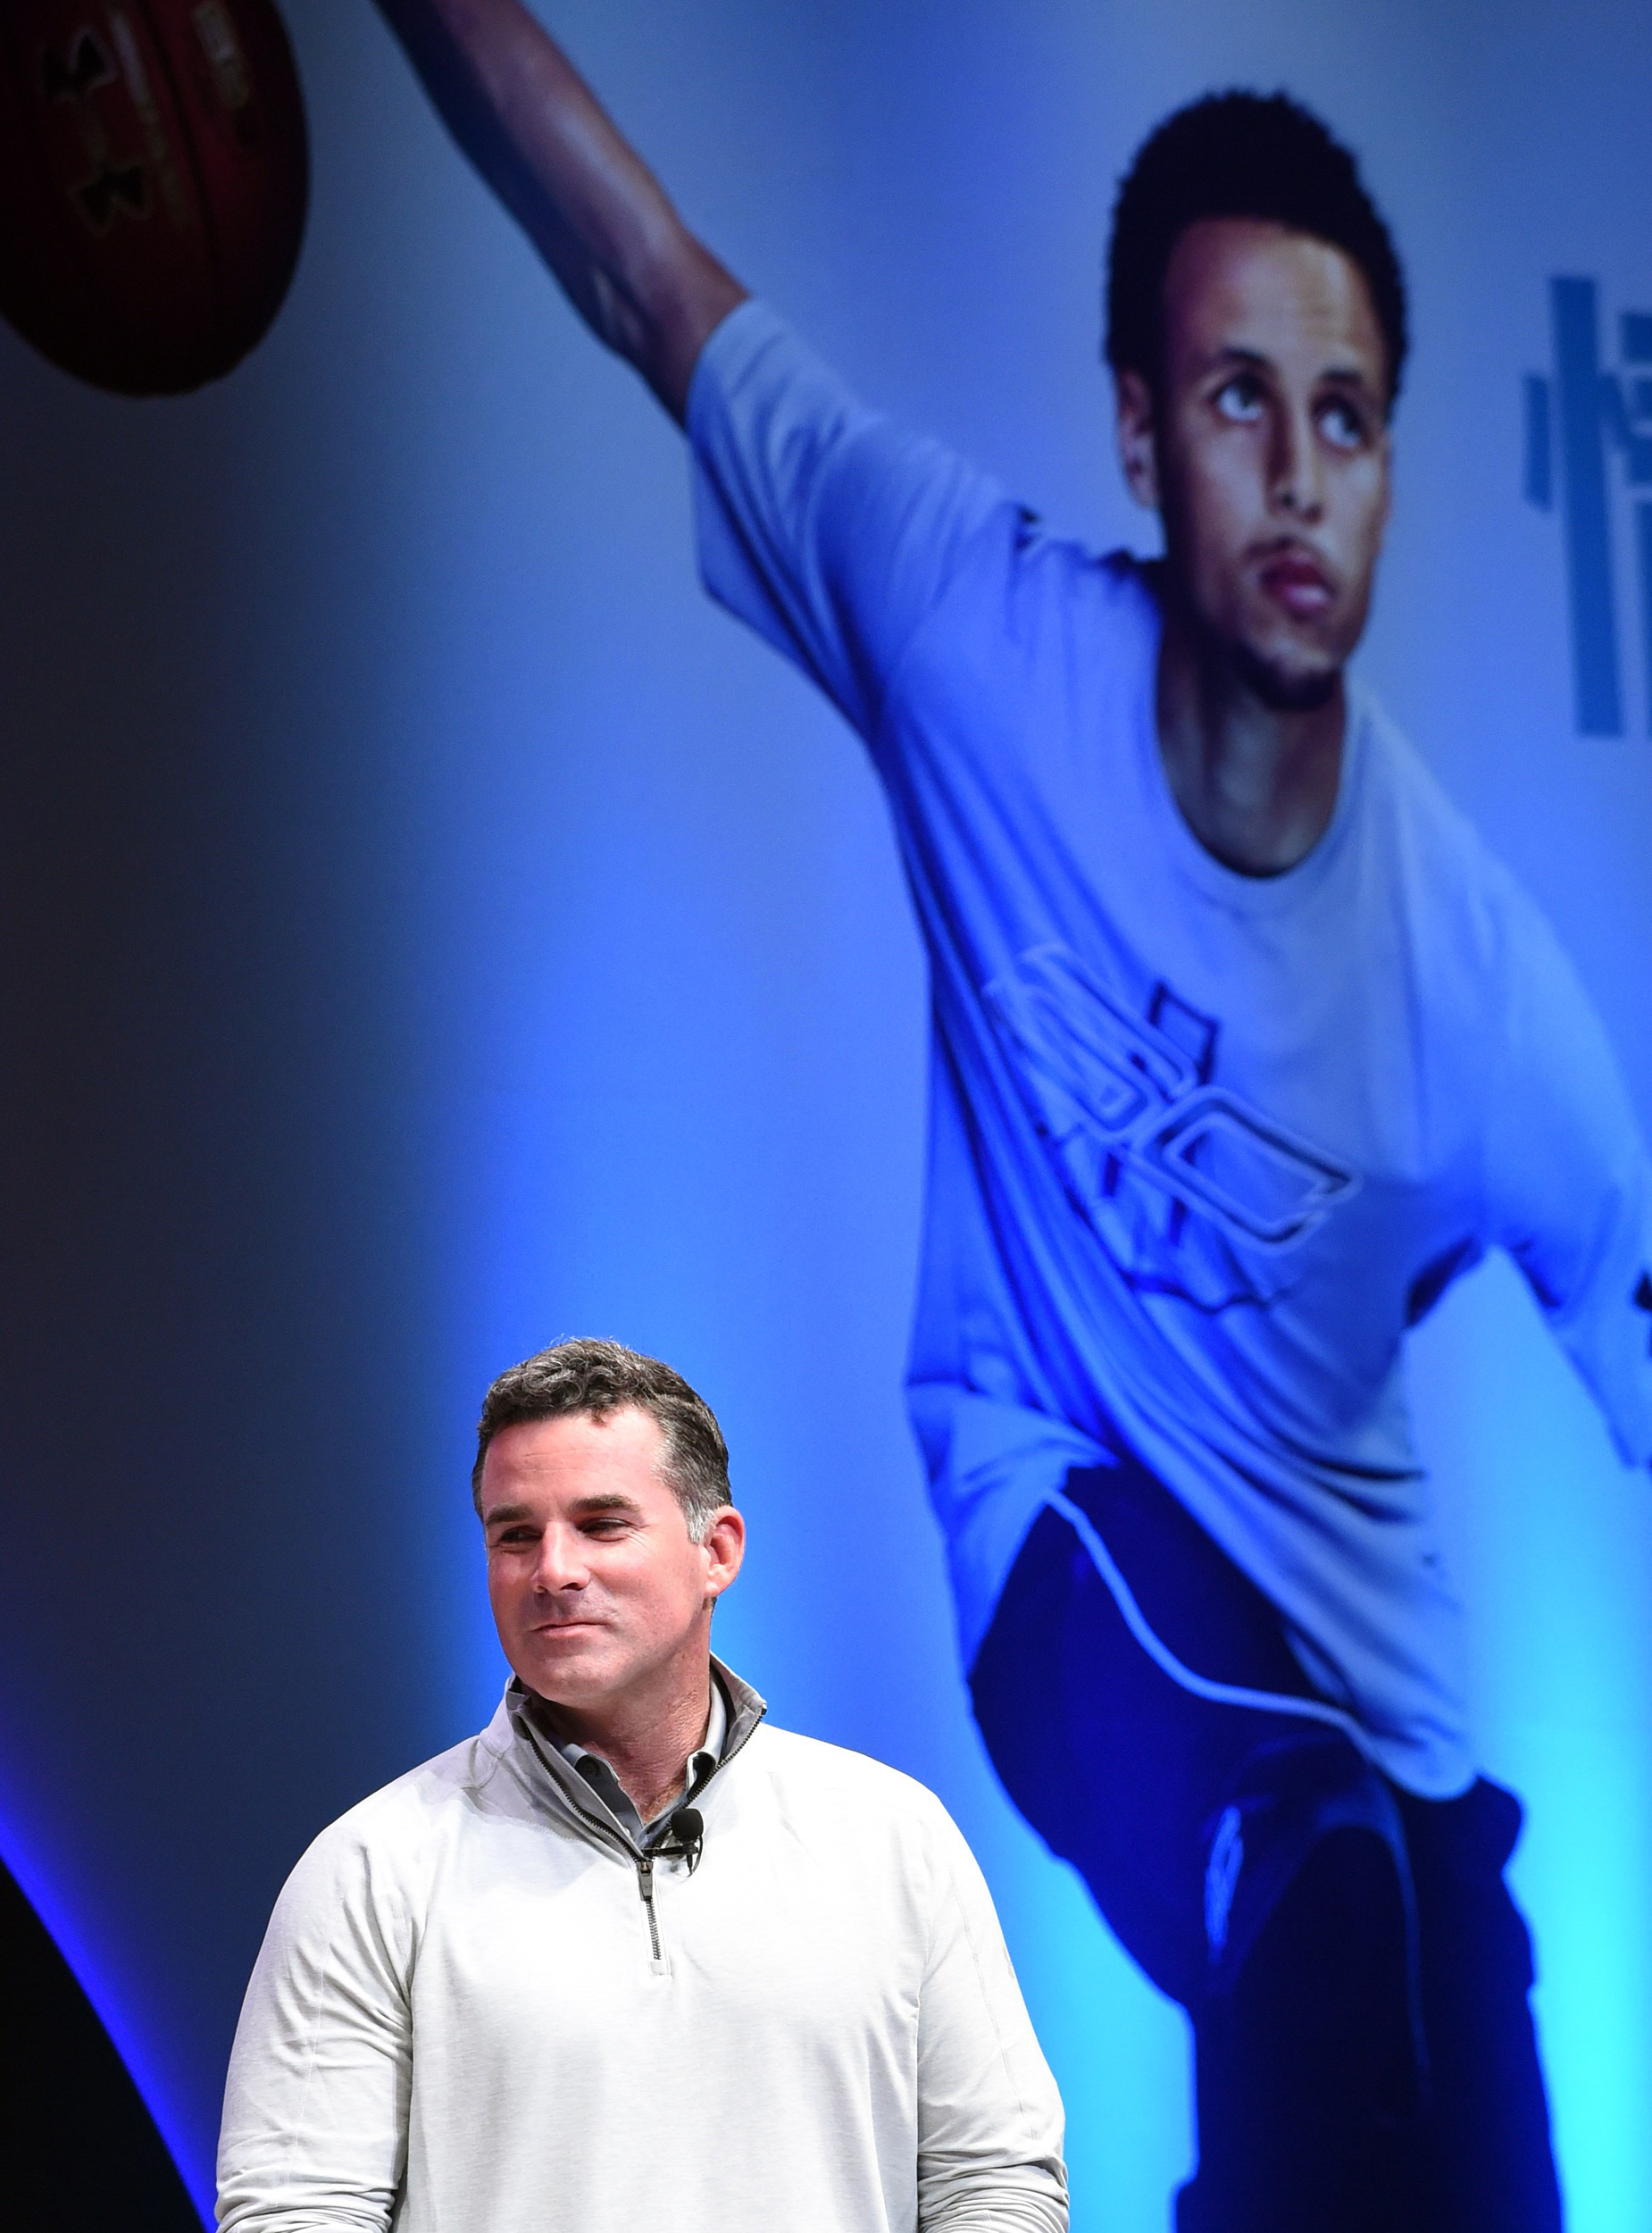 Under Armour (UA) founder, chairman and CEO Kevin Plank attends an event with National Basketball Association (NBA) Golden State Warriors 2014-2015 season MVP Stephen Curry in Tokyo on September 4, 2015.